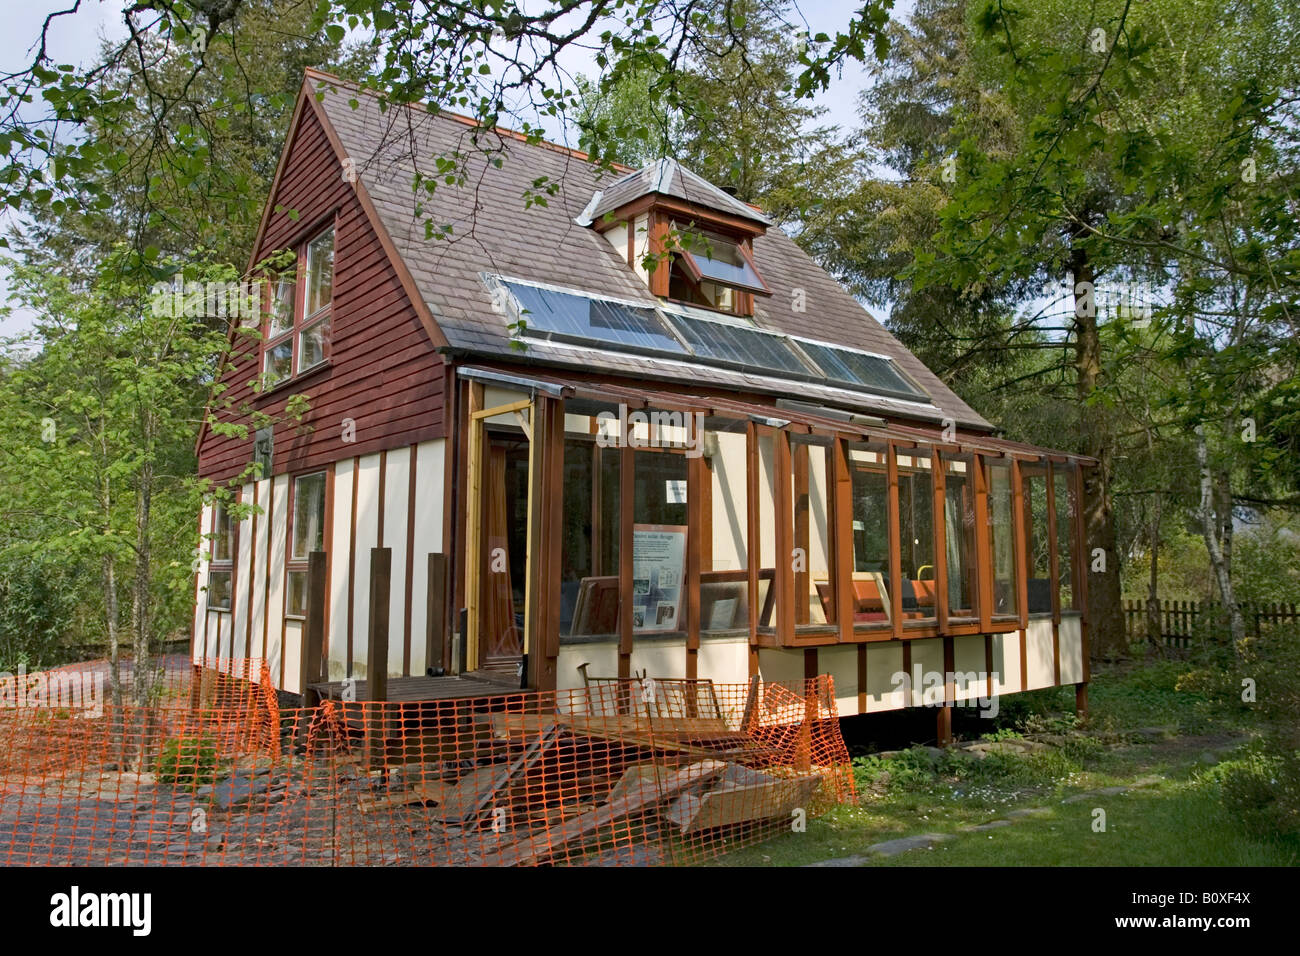 Self Build Wooden Sustainable House Centre For Alternative Technology  Machynlleth Wales UK